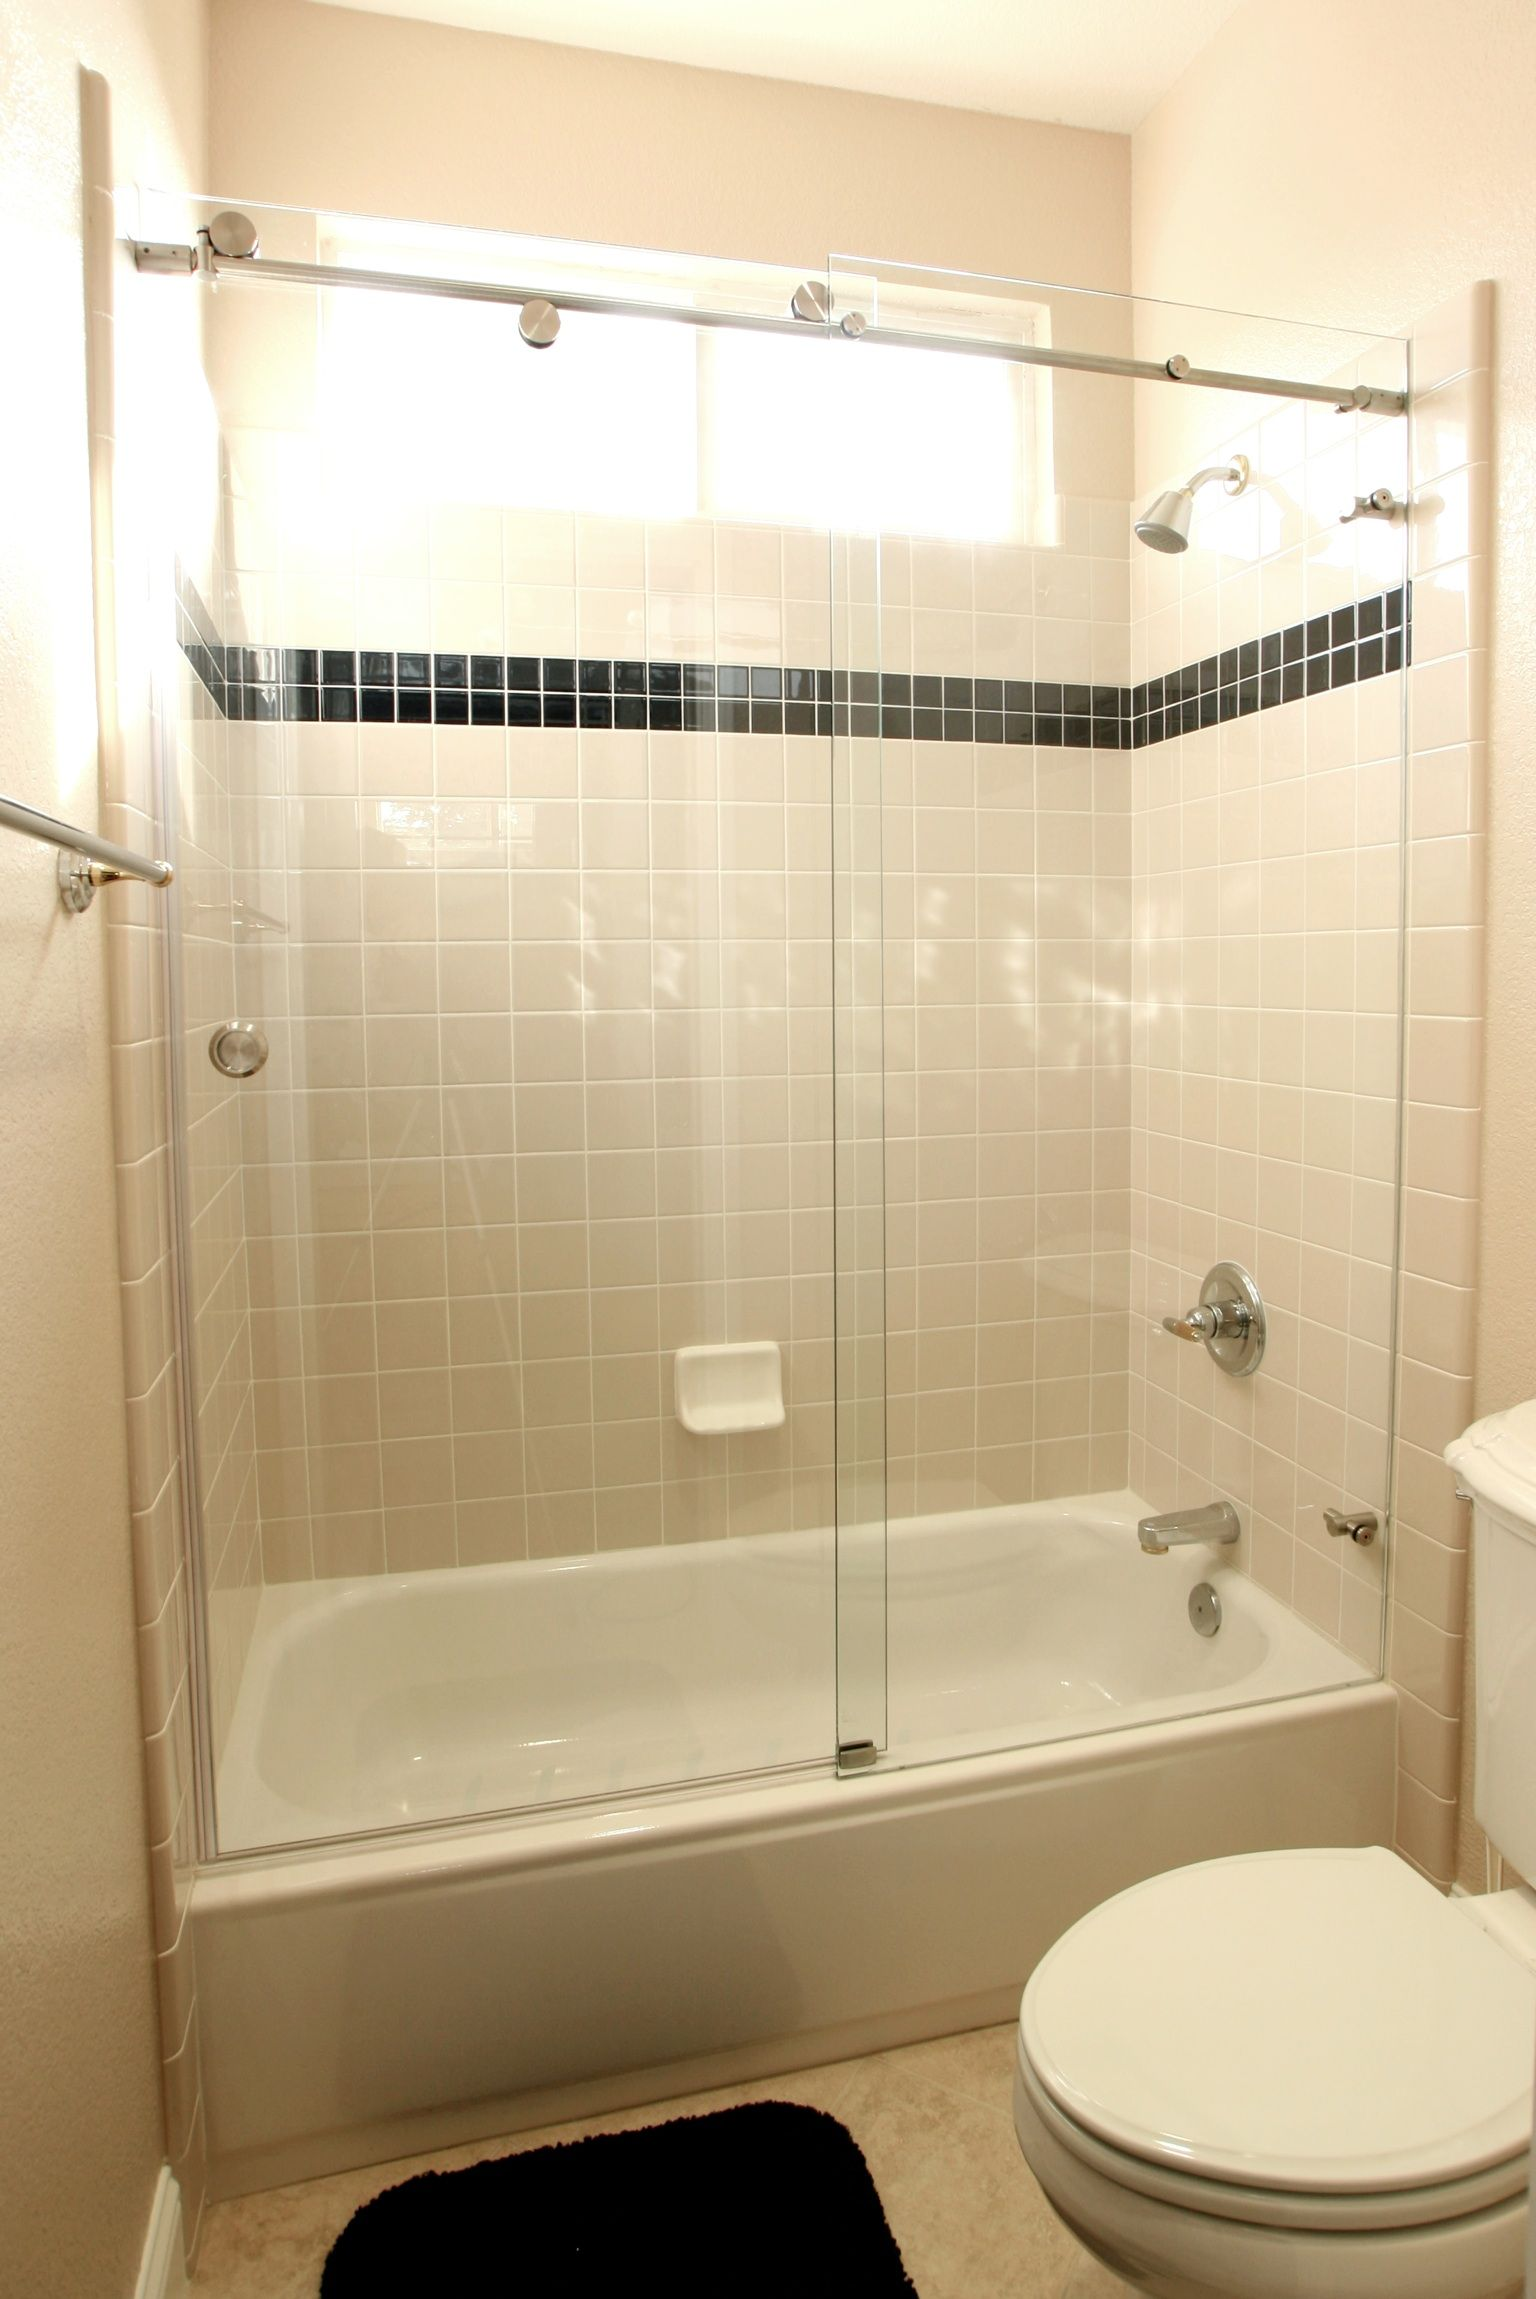 installation sliding install style shower doors door a tub with trad bathtub to traditional how and glass care